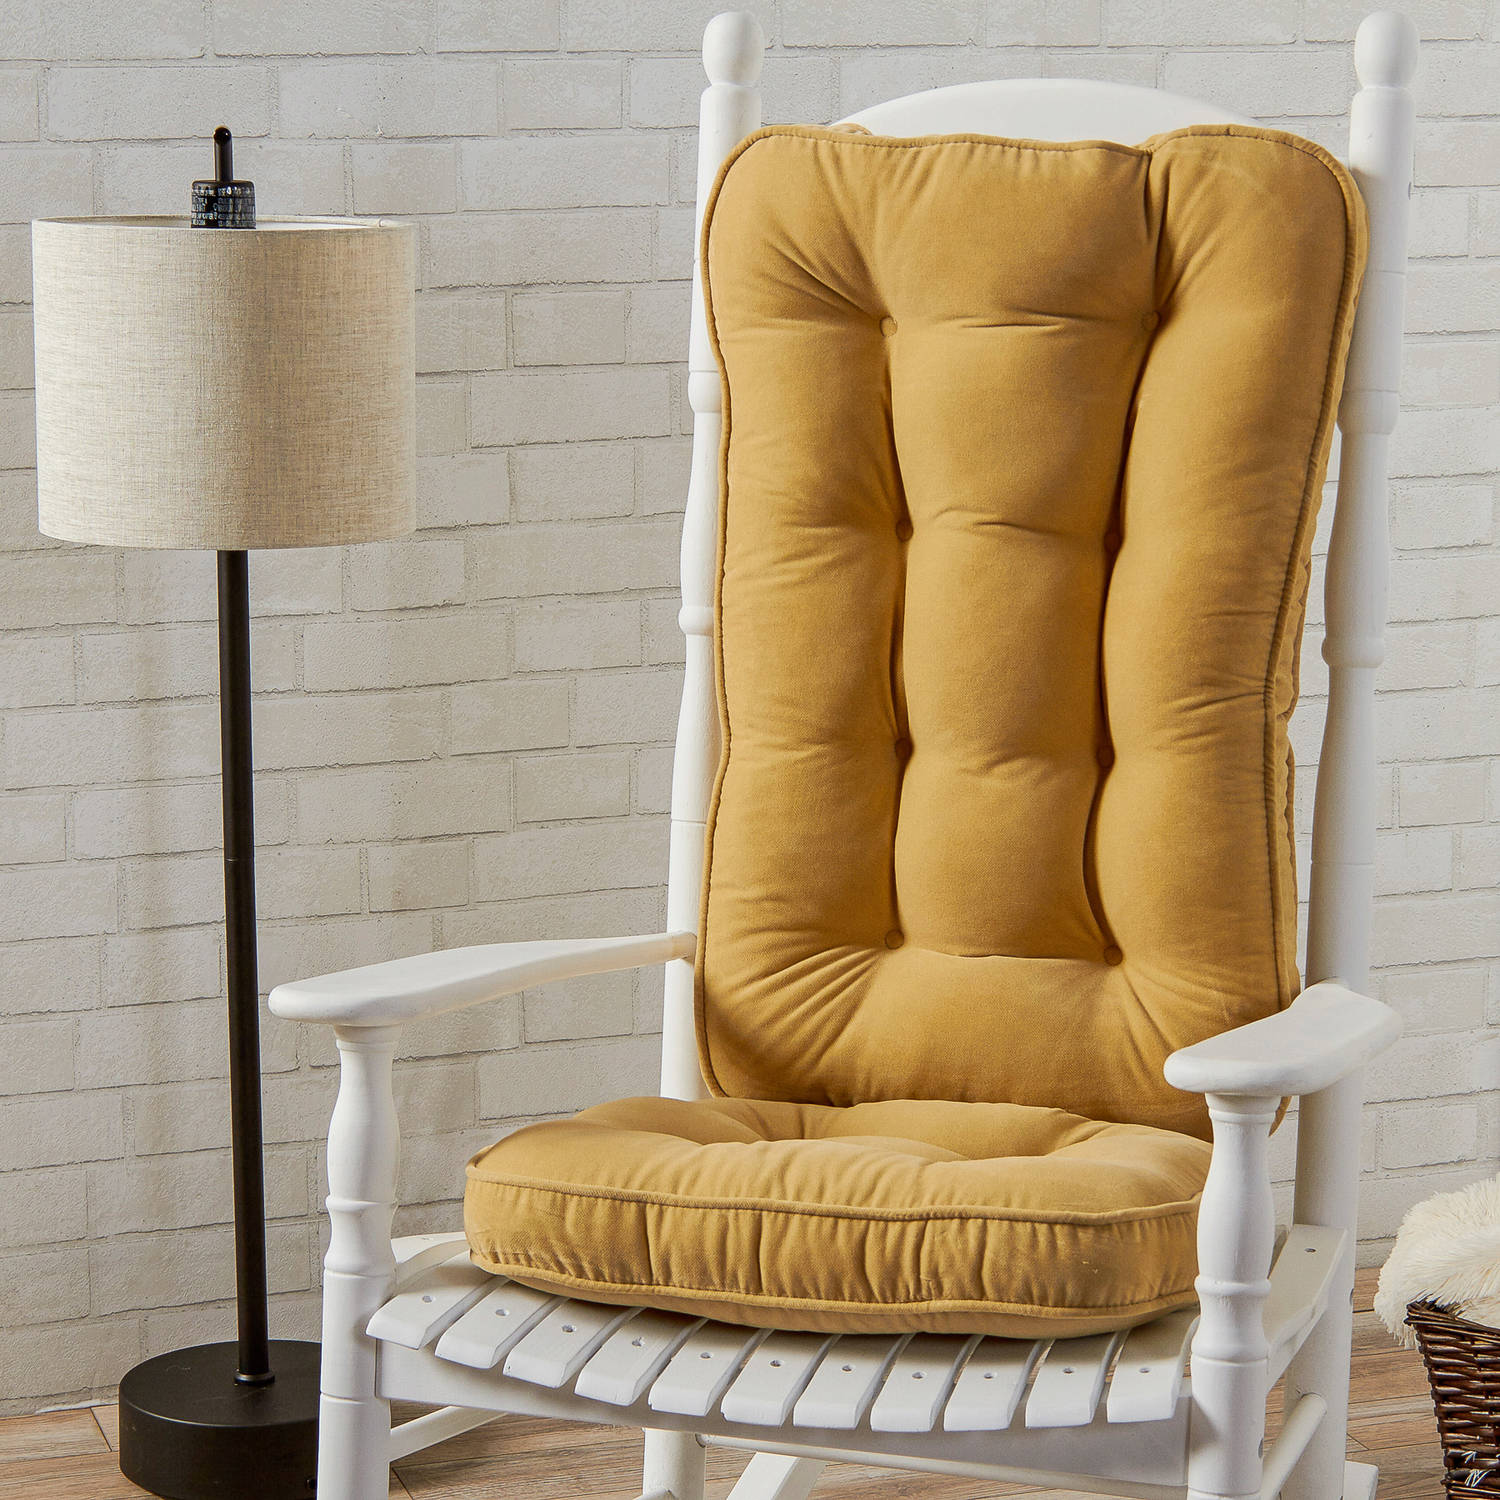 Rocking Chair Cushion | Cushions for Rocking Chairs Indoors | Rocking Chair Cusion